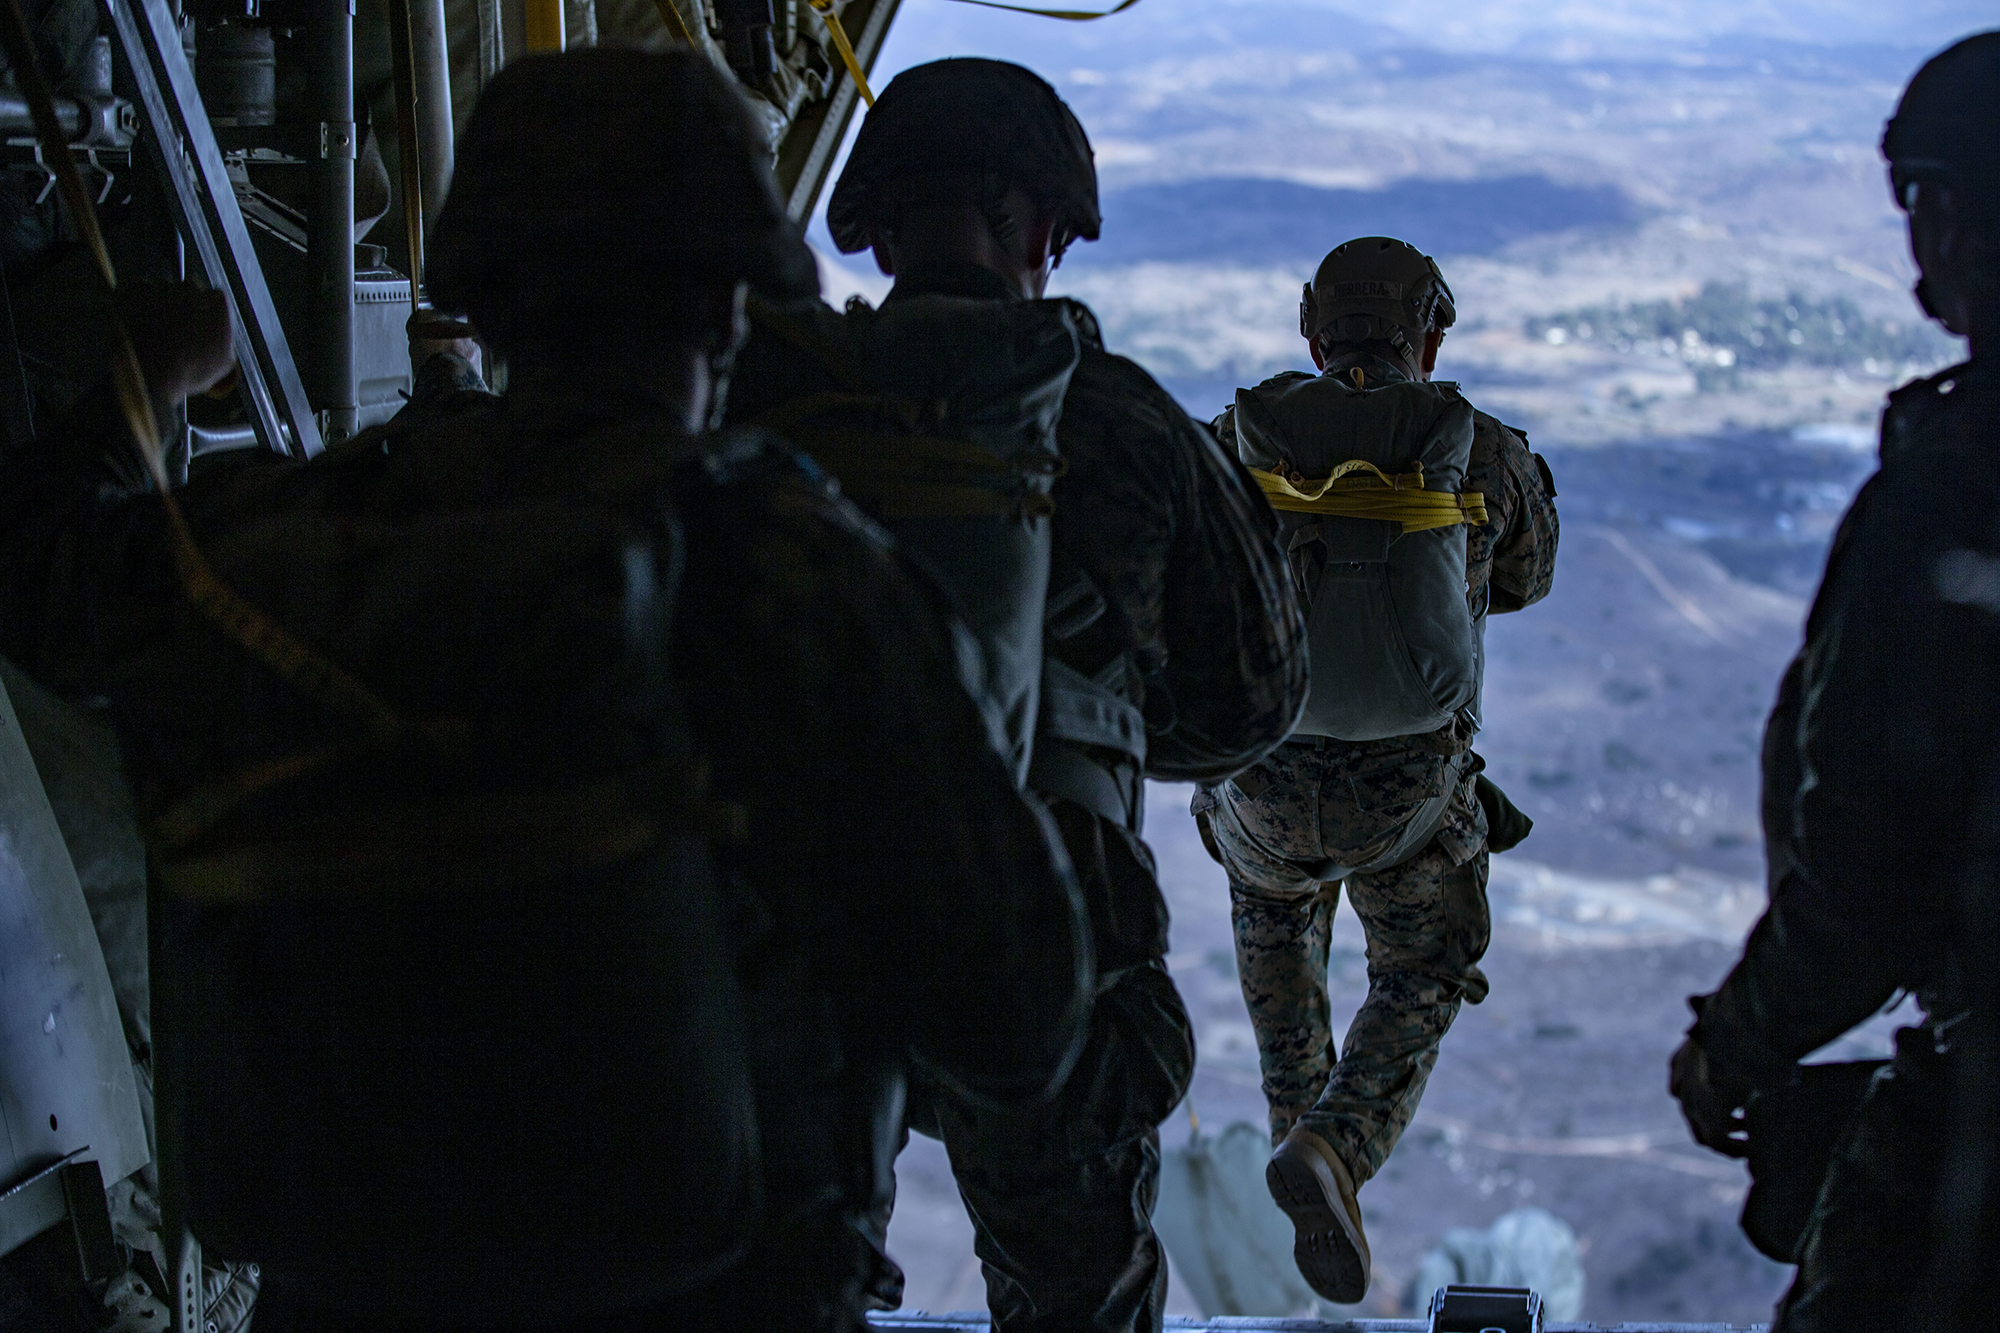 Marines static line jump from a KC-130J Hercules over Drop Zone Basilone during a parachute operation on Marine Corps Base Camp Pendleton, Calif., Dec. 10, 2020. (Lance Cpl. Drake Nickels/Marine Corps)